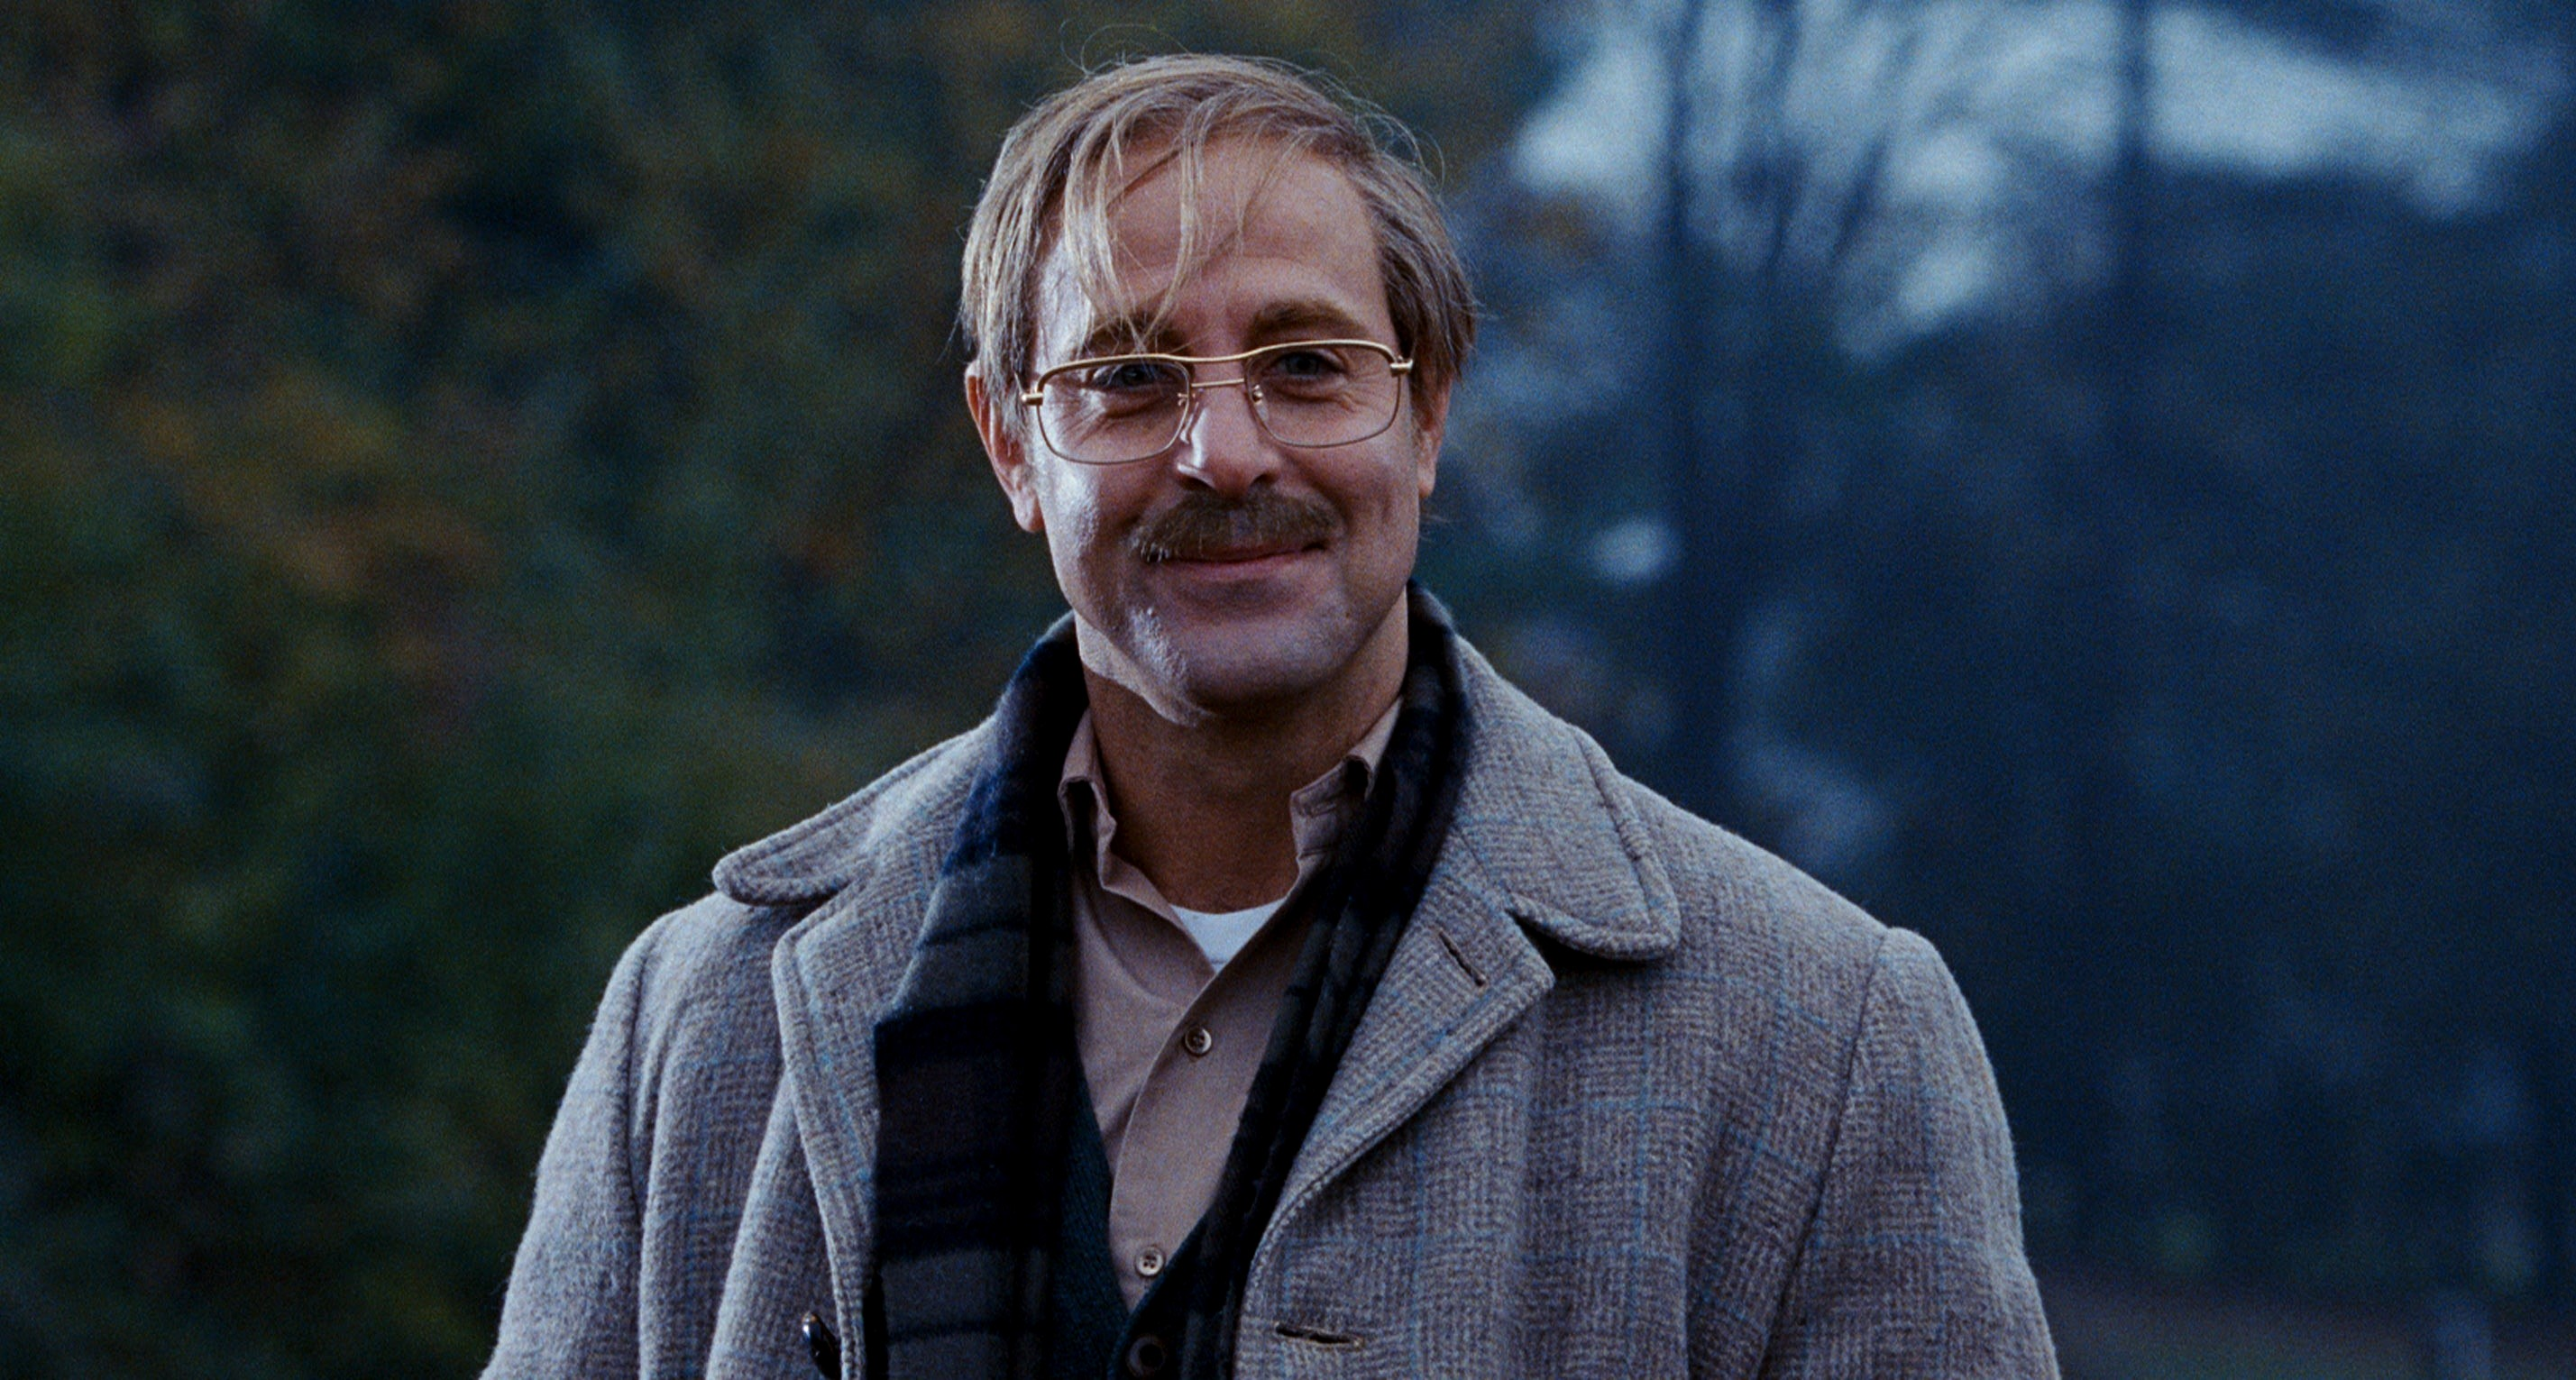 Stanley Tucci as creepy paedophile George Harvey in The Lovely Bones (2009)